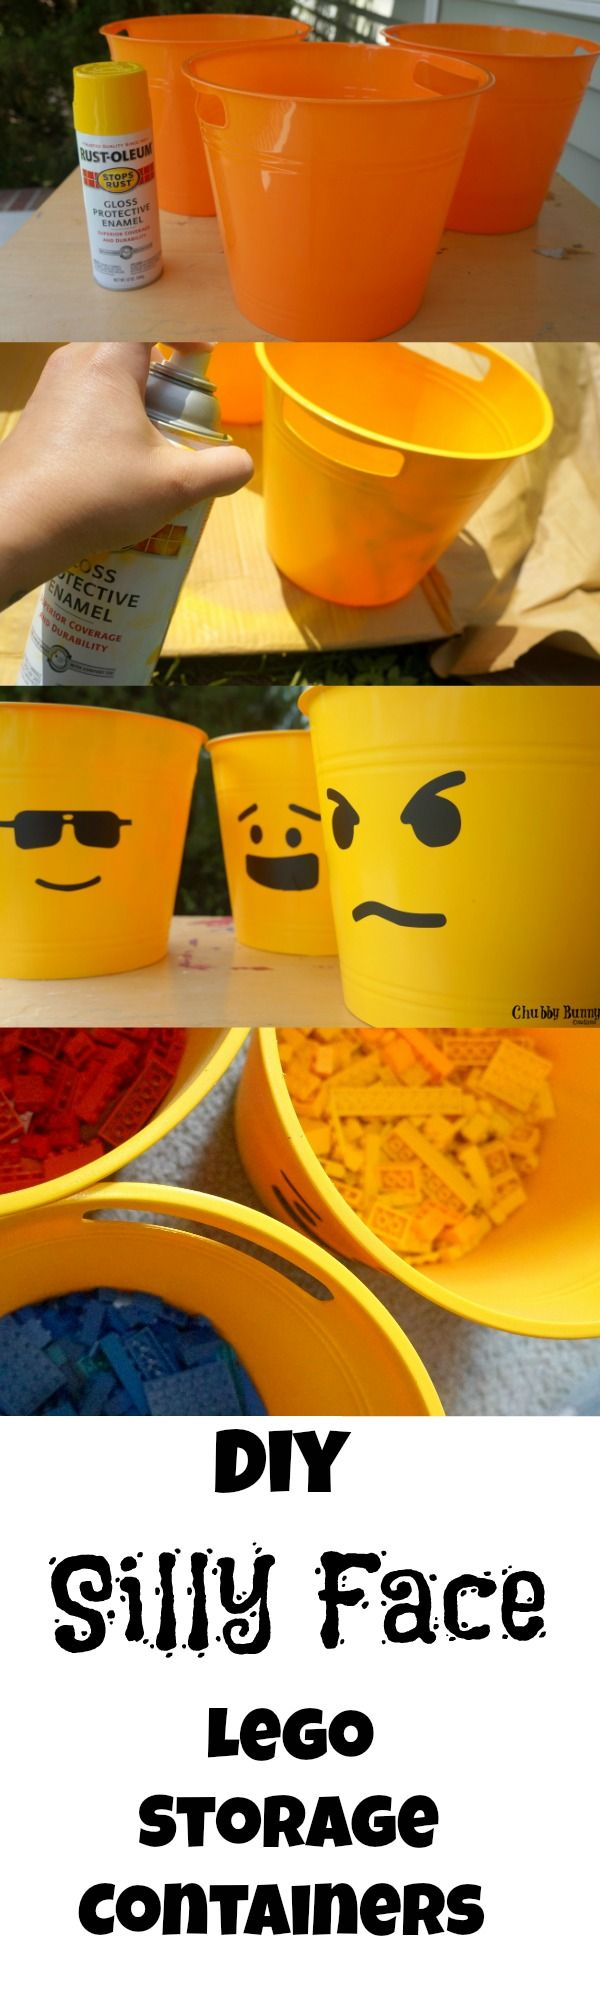 DIY Silly Face Lego Storage Containers from the Dollar Store